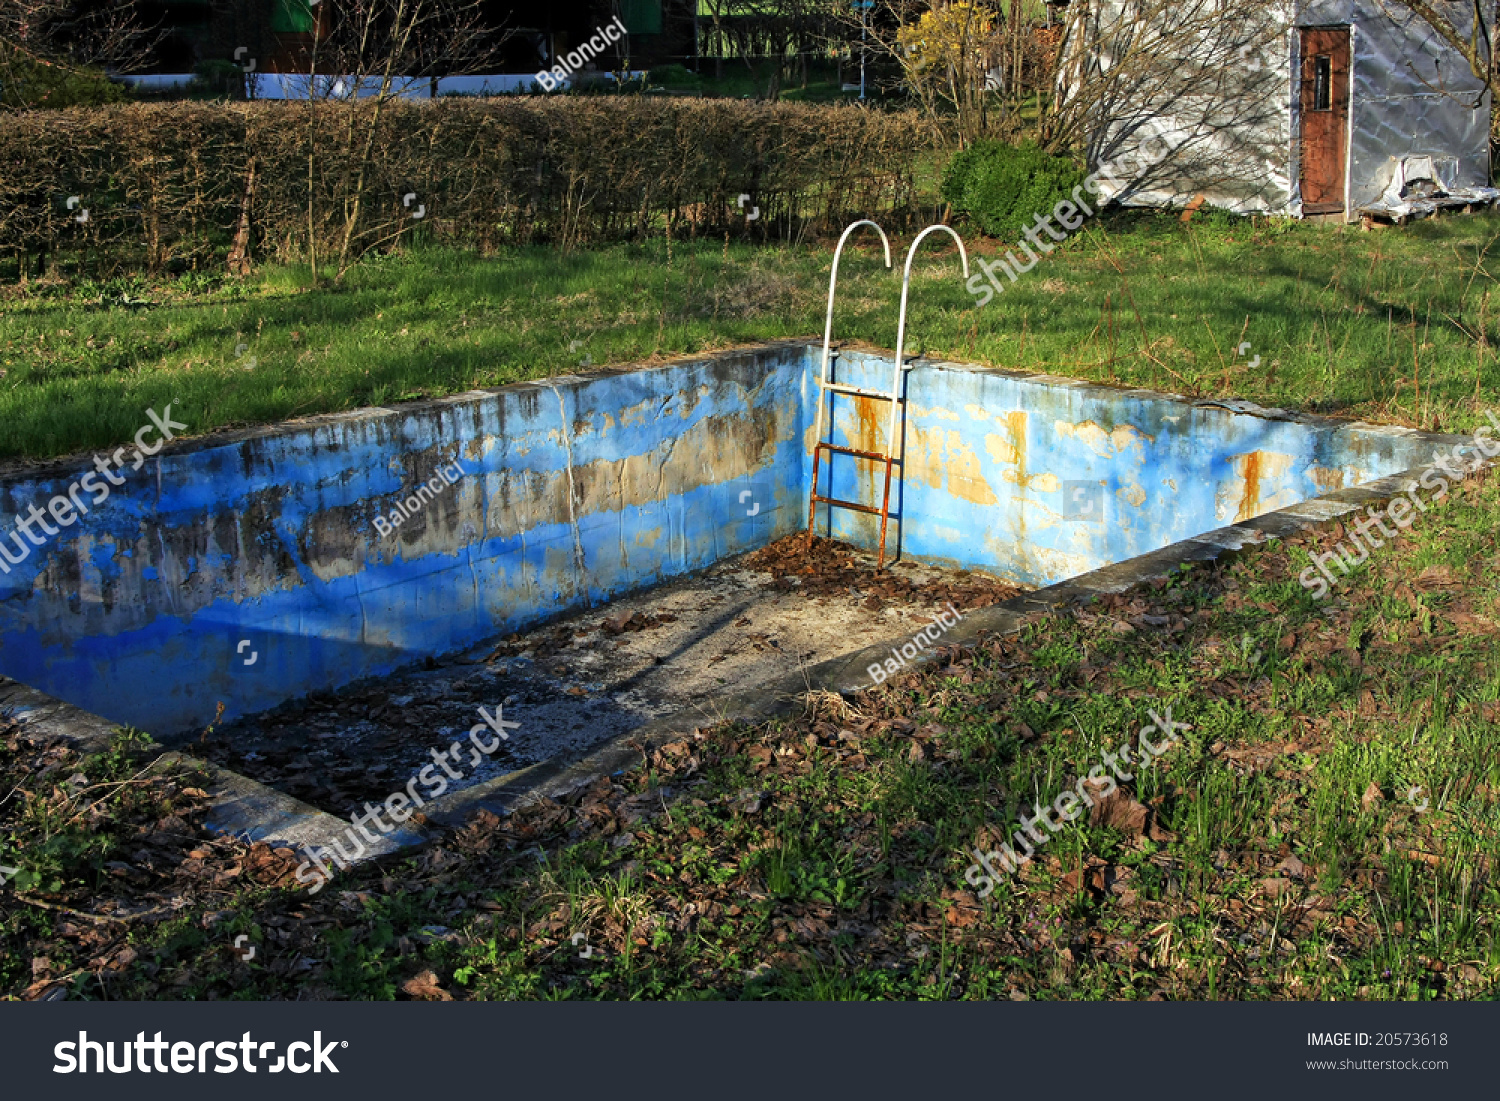 Abandoned Swimming Pool Bad Rusty Condition Stock Photo 20573618 Shutterstock